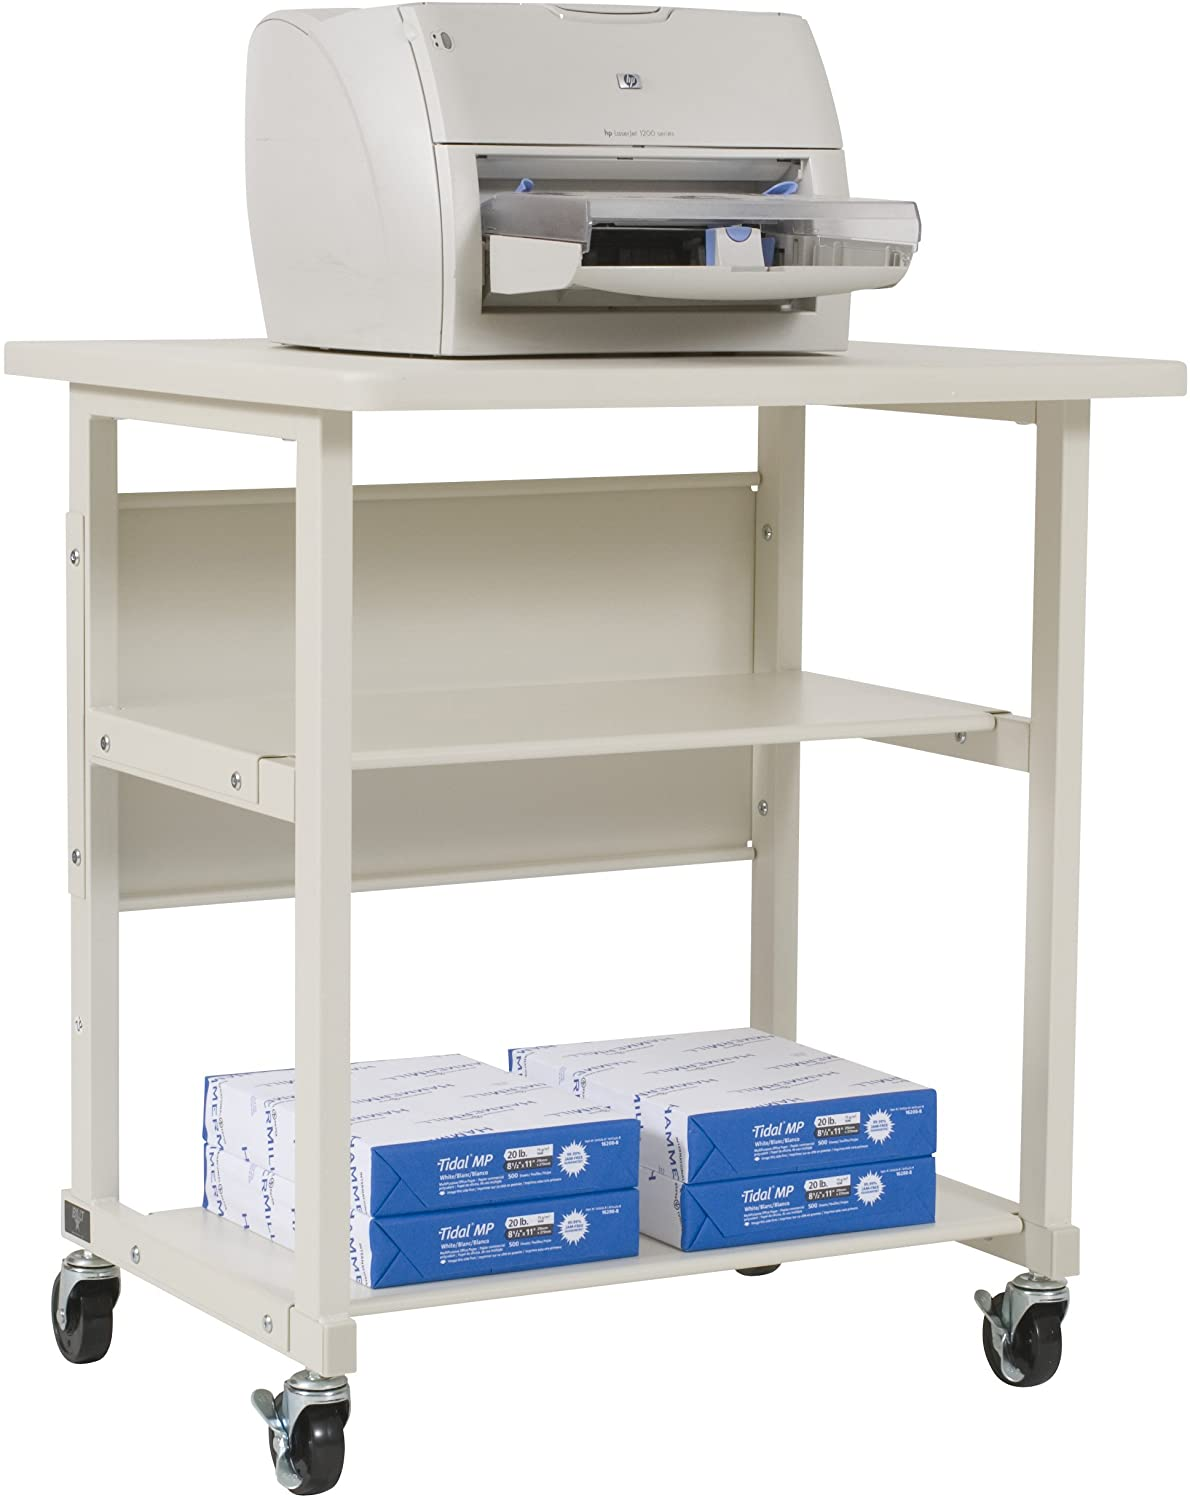 Amazon.com: BALT 22601 Heavy-Duty Mobile Printer Stand w/3 Shelves ...